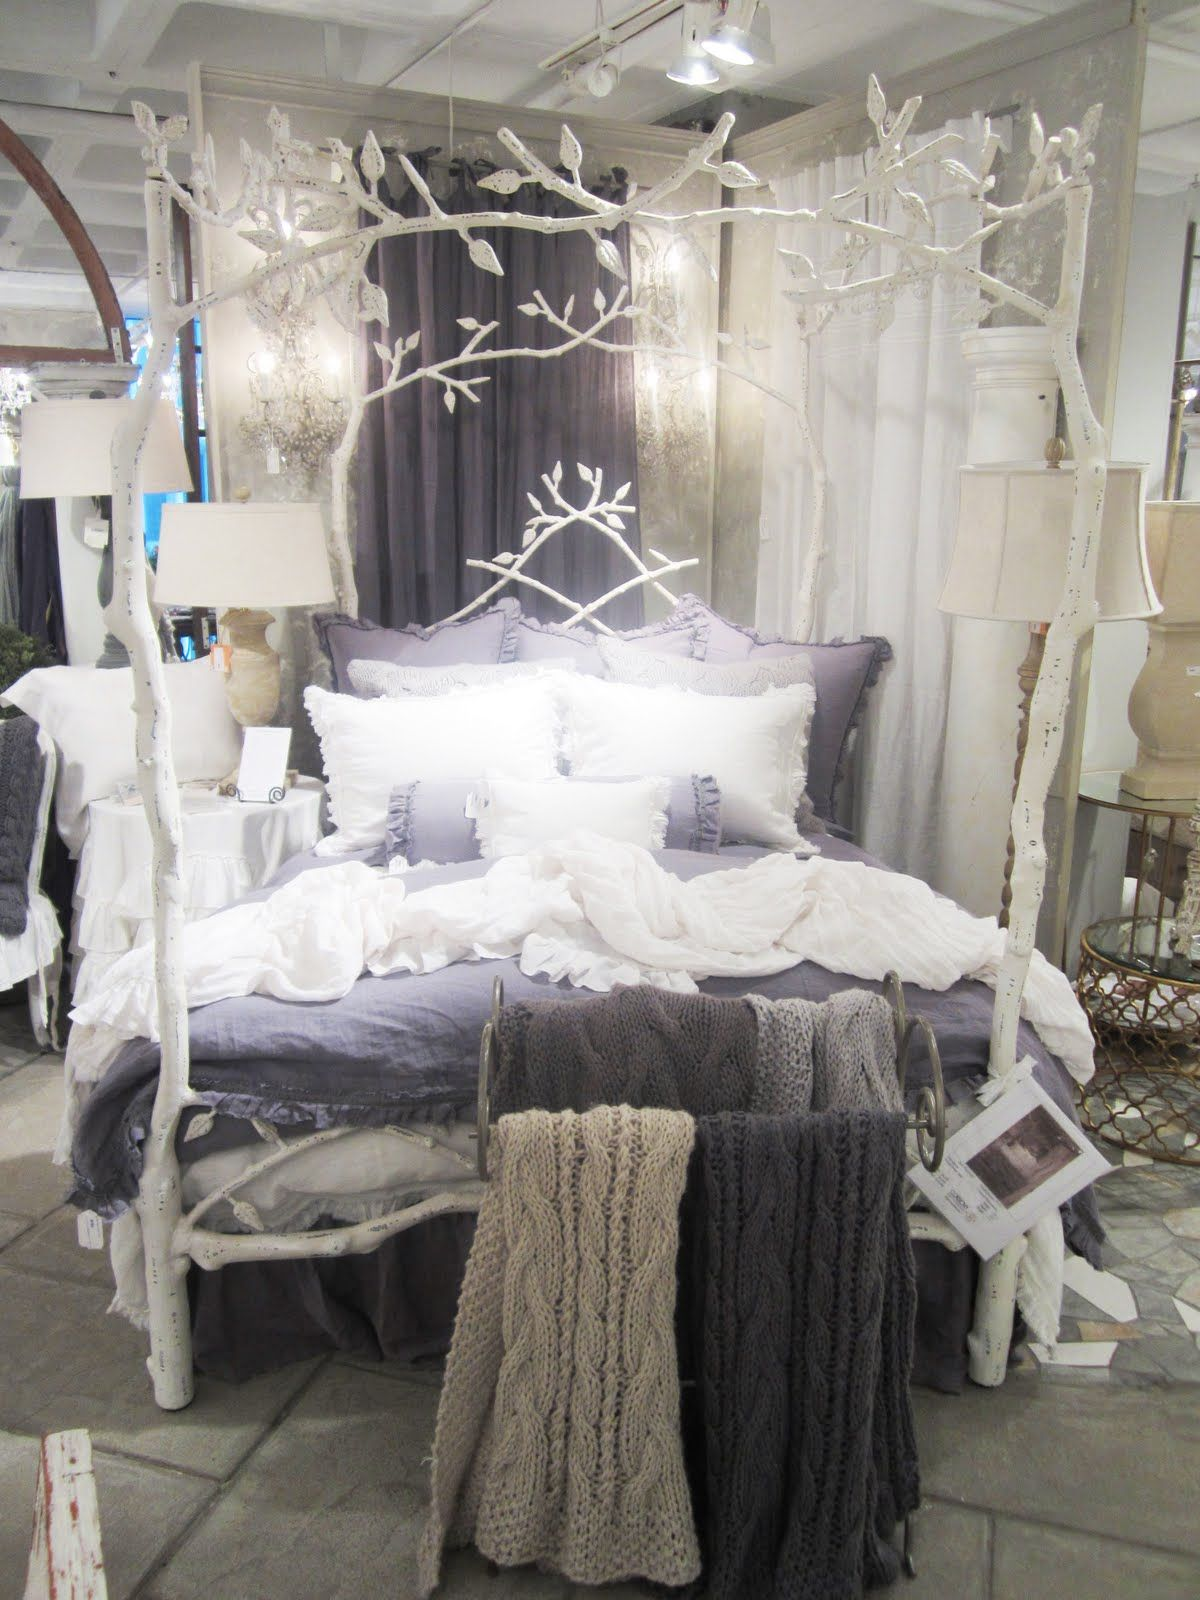 SHOP WATCH: HOME SWEET HOME - THE SPARKLE IN ATLANTA AT CMA ...